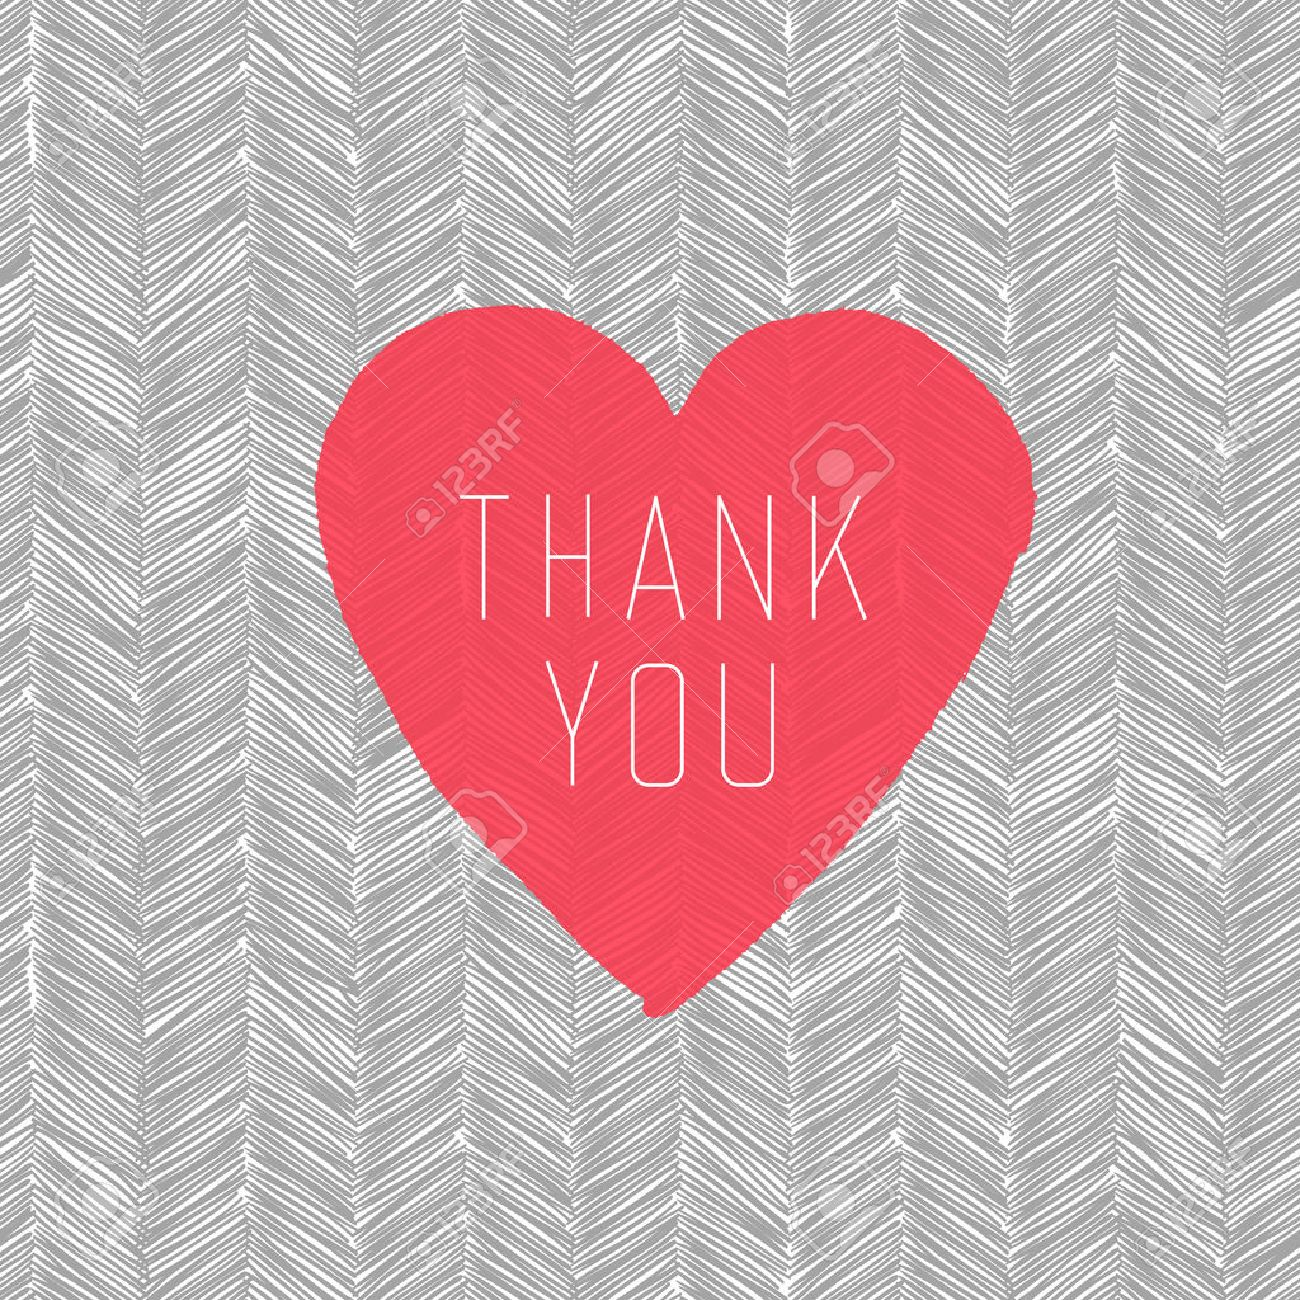 ""\\\\\\\\\\\\\\\\""""Thank You\\\\\\\\\\\\\\\"""" Card with Heart Symbol on Hand Drawn Pattern - 34372032""1300|1300|?|en|2|b29cd1d3a2c1709cc3eaab6b9043e846|False|UNLIKELY|0.2832987606525421